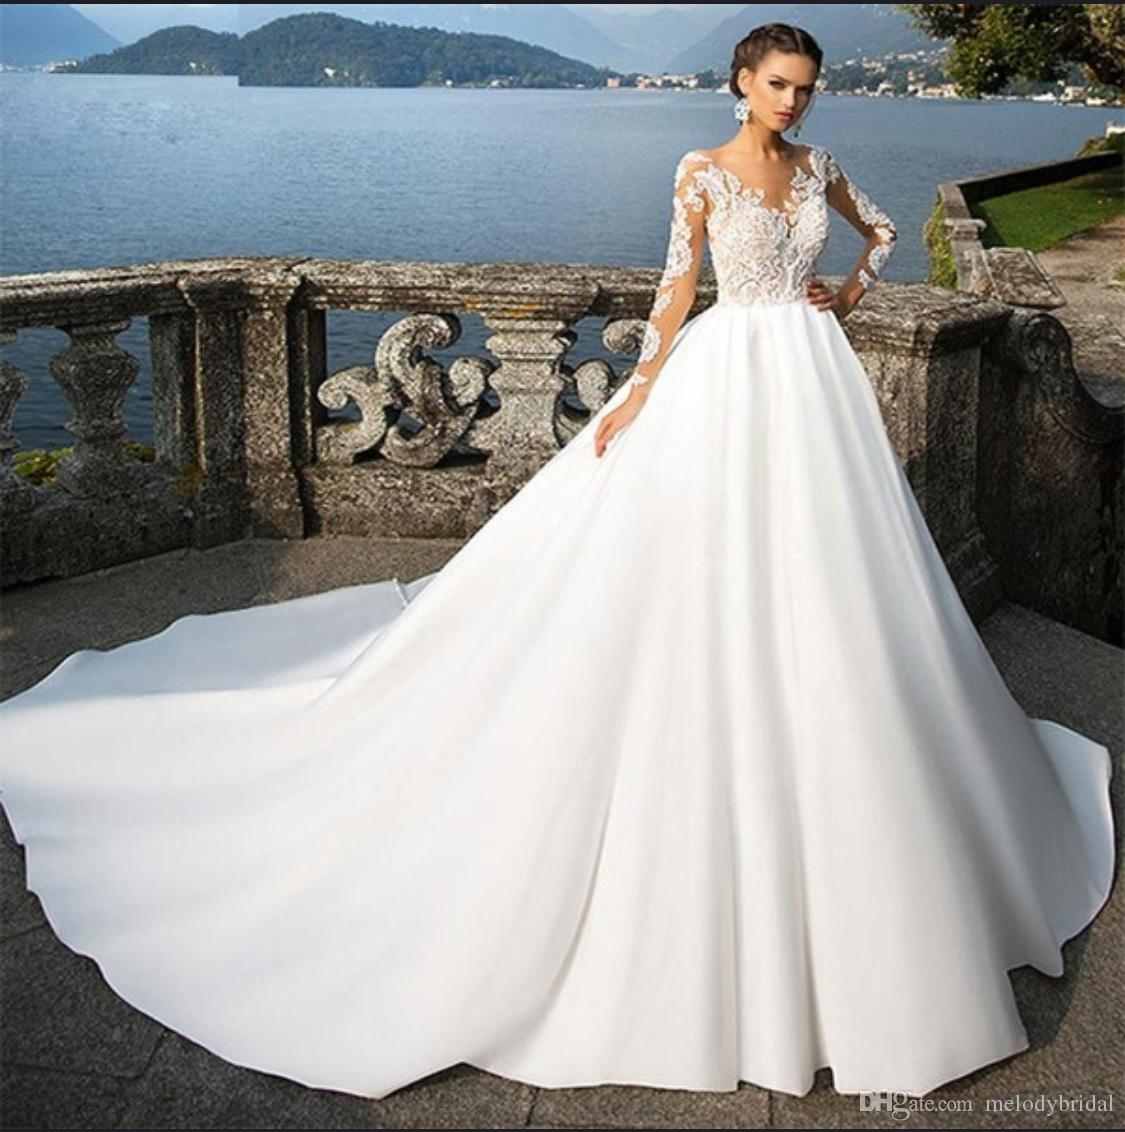 Long Sleeves Wedding Dresses 2018 Newest Bridal Gown Satin Fabric Lace  Appliques With Long Train Dress For Brides Robe De Mariage Noiva Outdoor  Wedding ... 254990997b7e